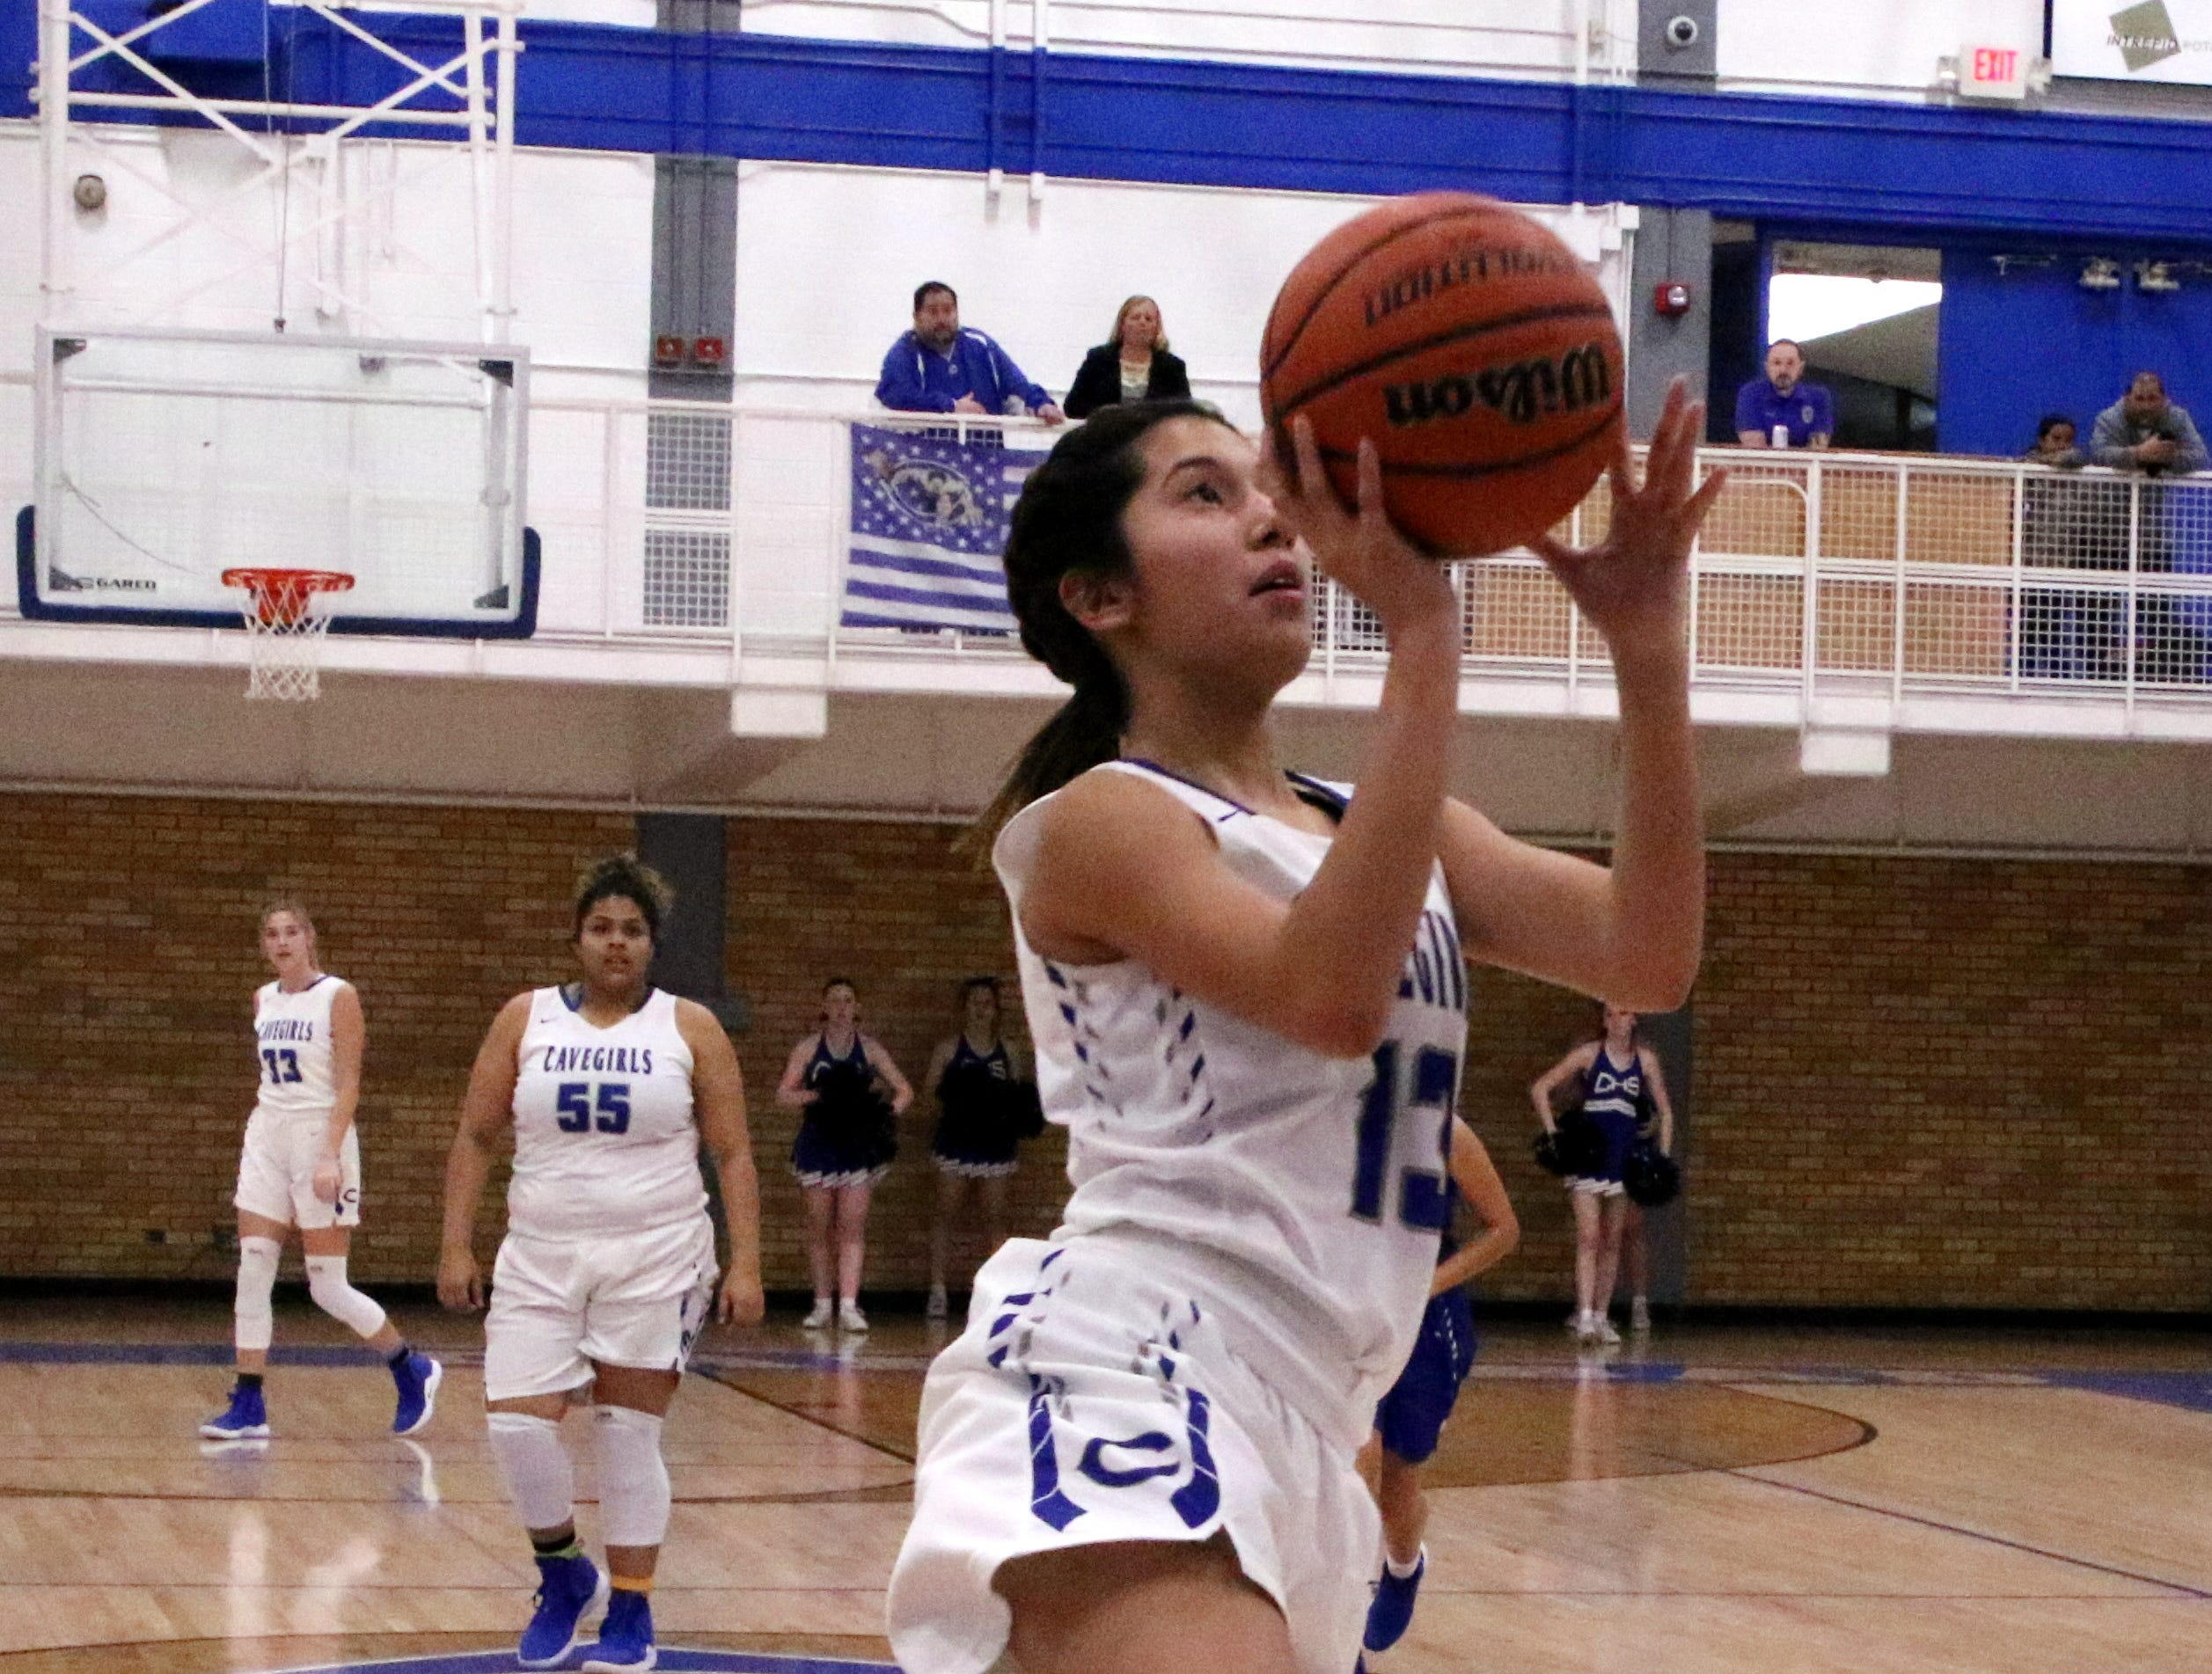 Tori Flores gets a buzzer-beating layup to end the first half against Lovington. She finished with 14 points for the Cavegirls.